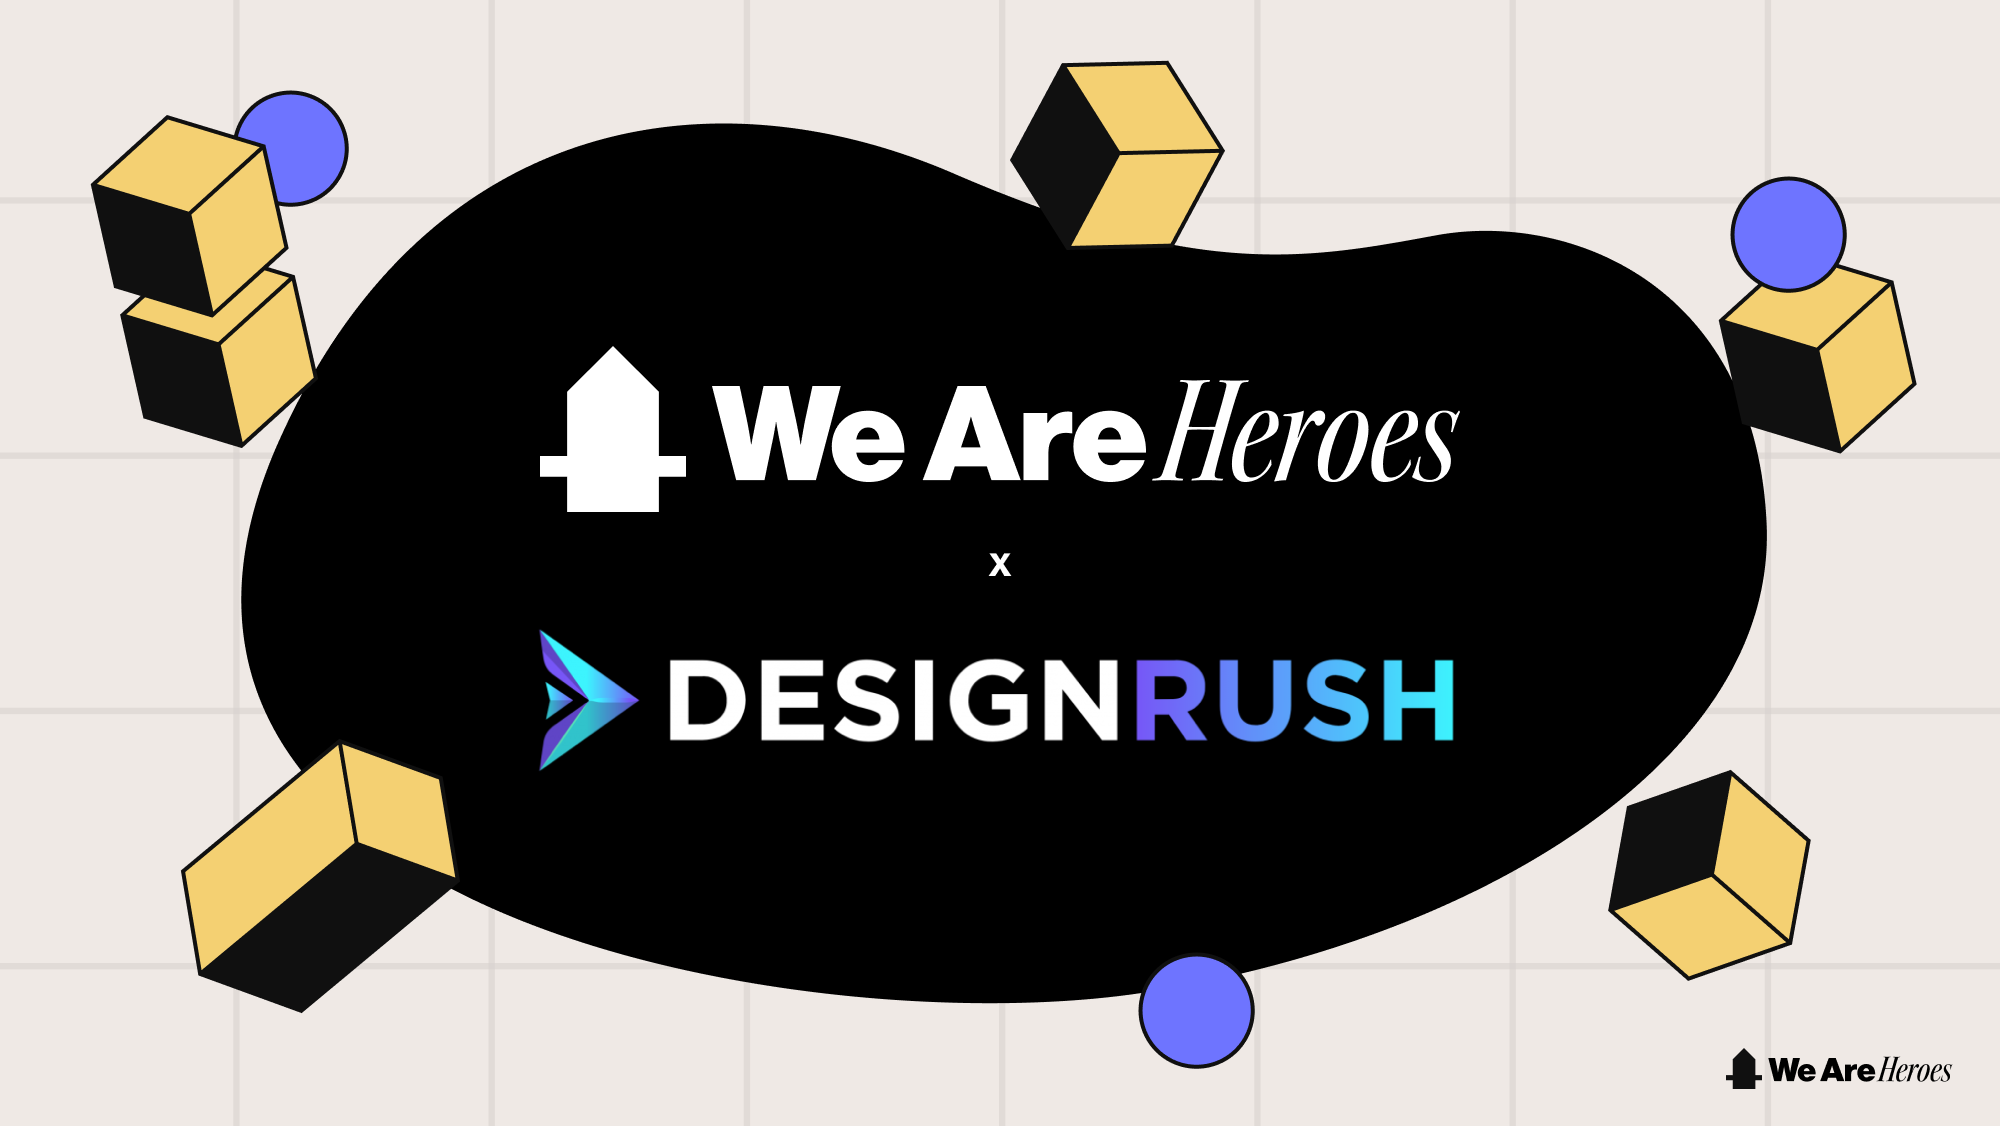 Thanks to Design Rush for listing We Are Heroes as a top digital agency in the UK